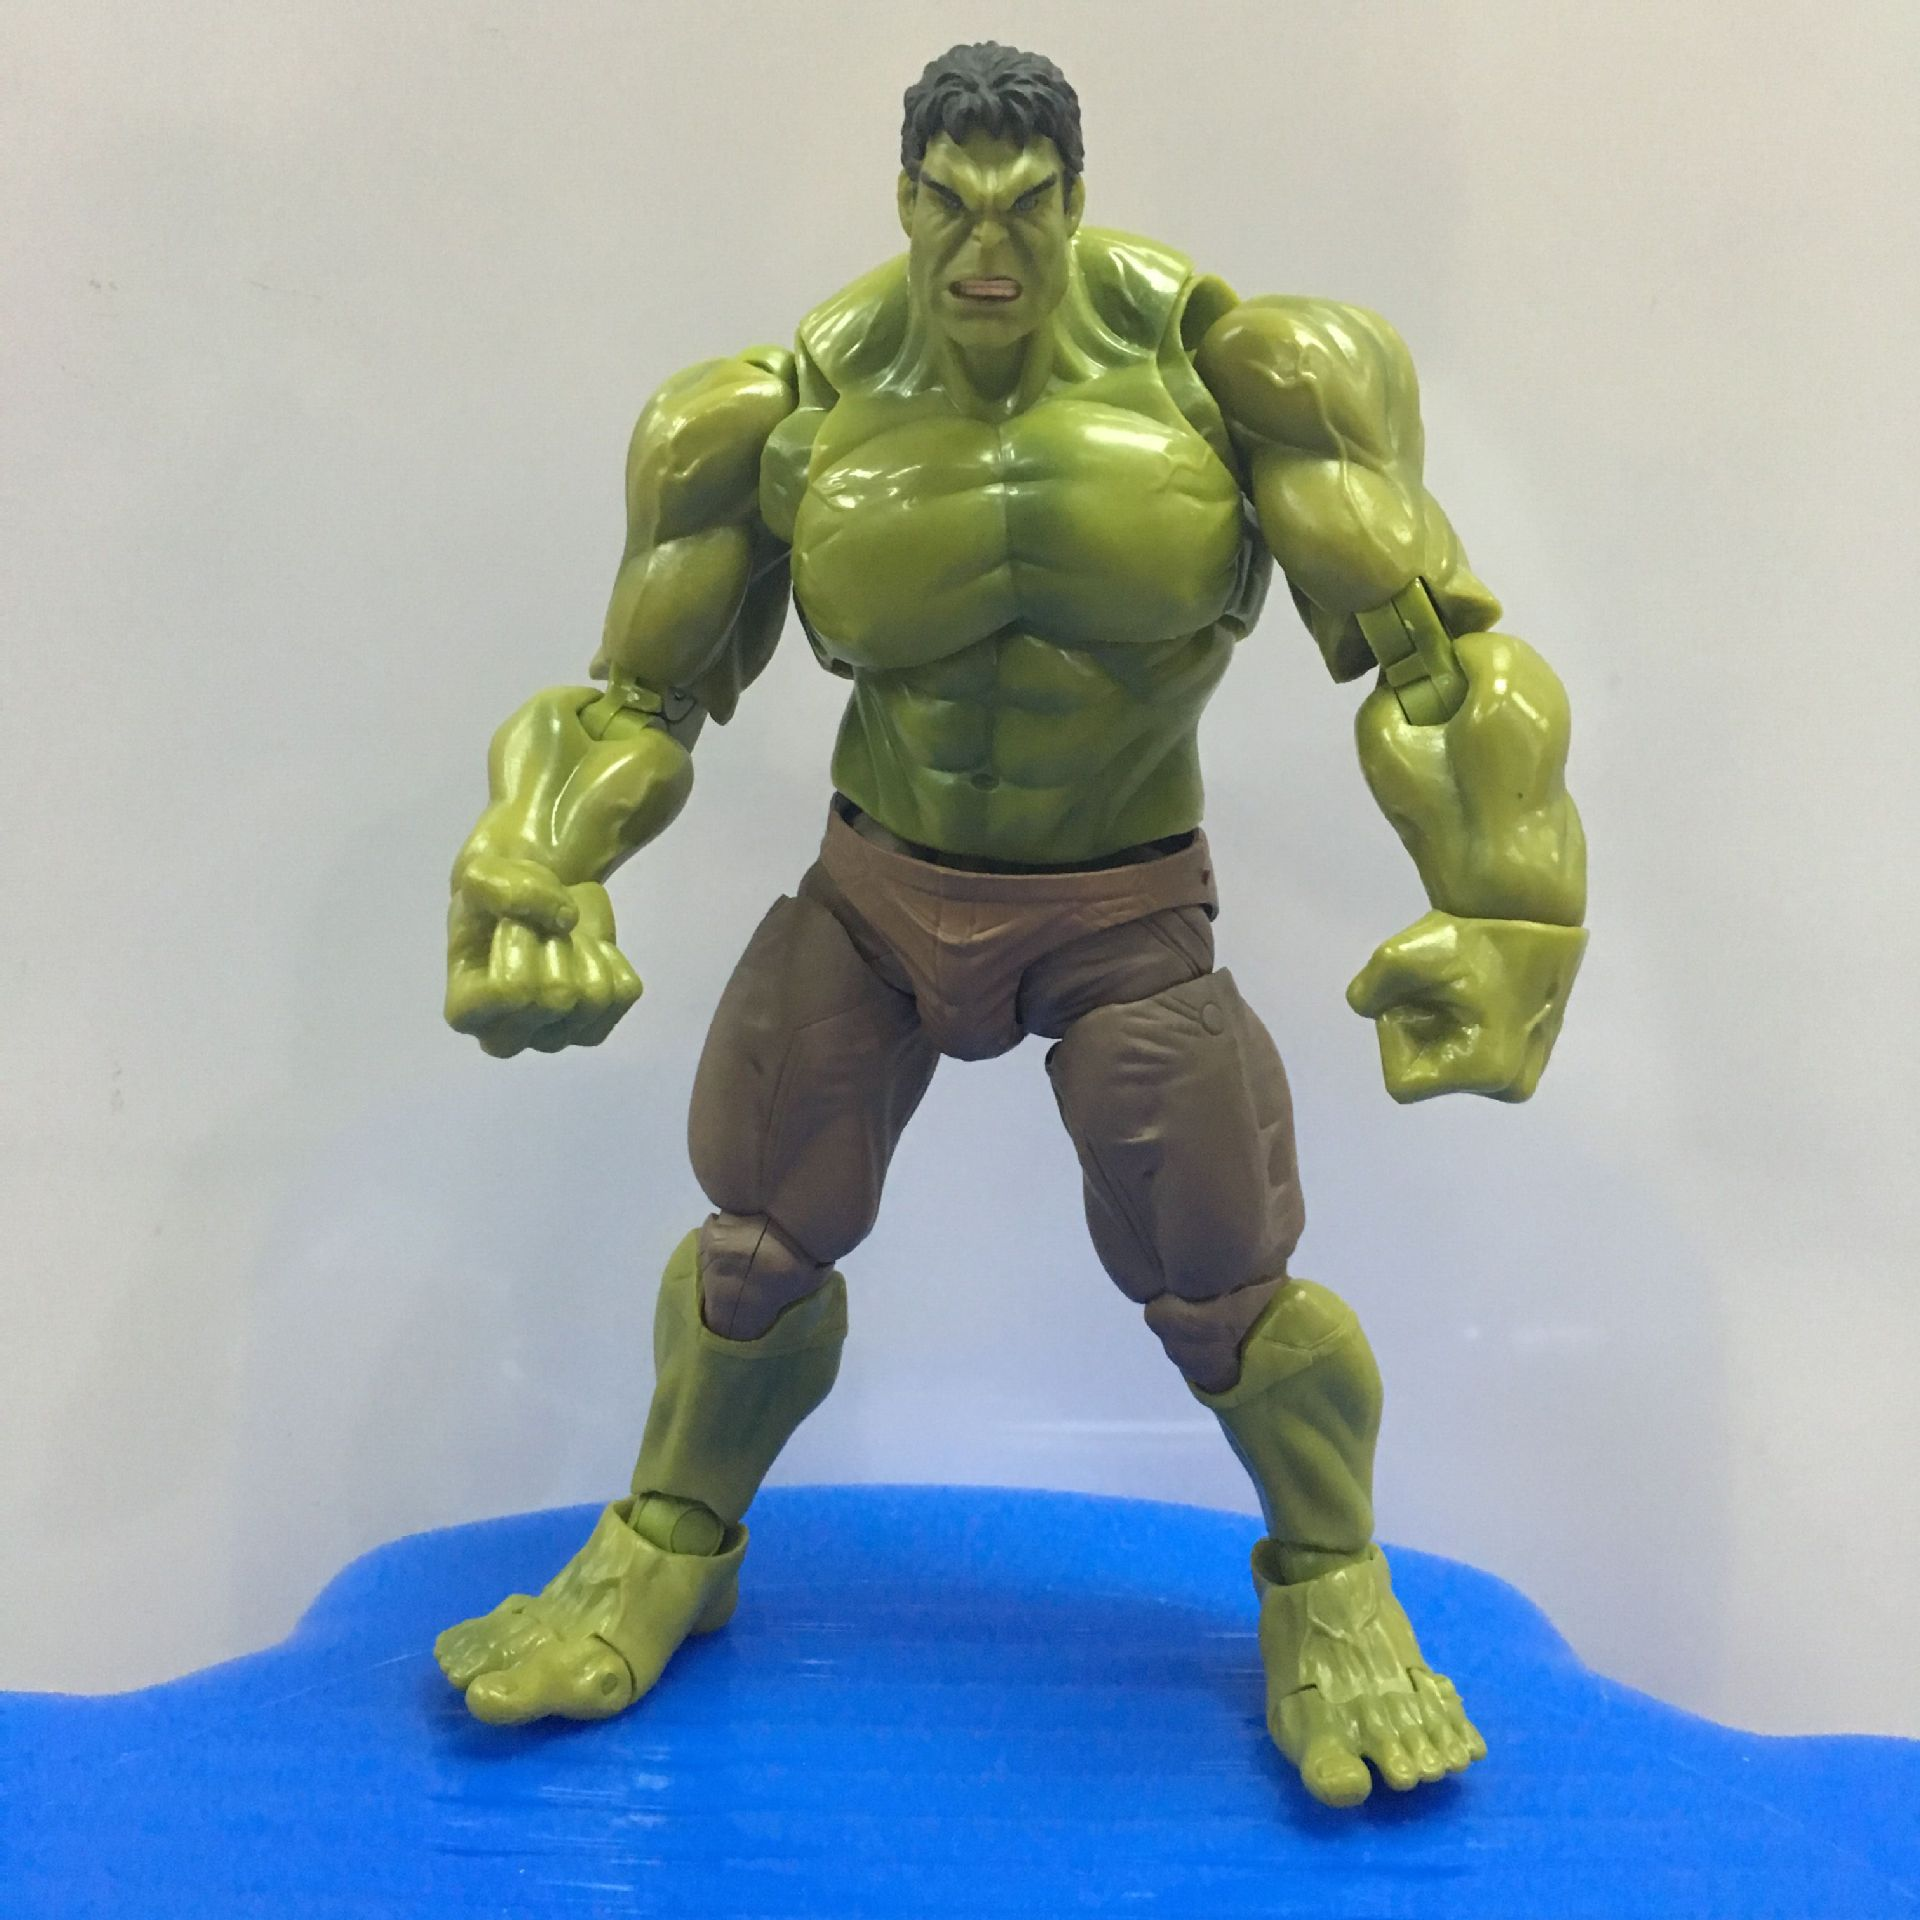 ФОТО 2016 Hot Toys Avengers Figures Hulk Action Figures Pvc Superman 17cm Figma Best Decration Gifts For Kids Collection Models